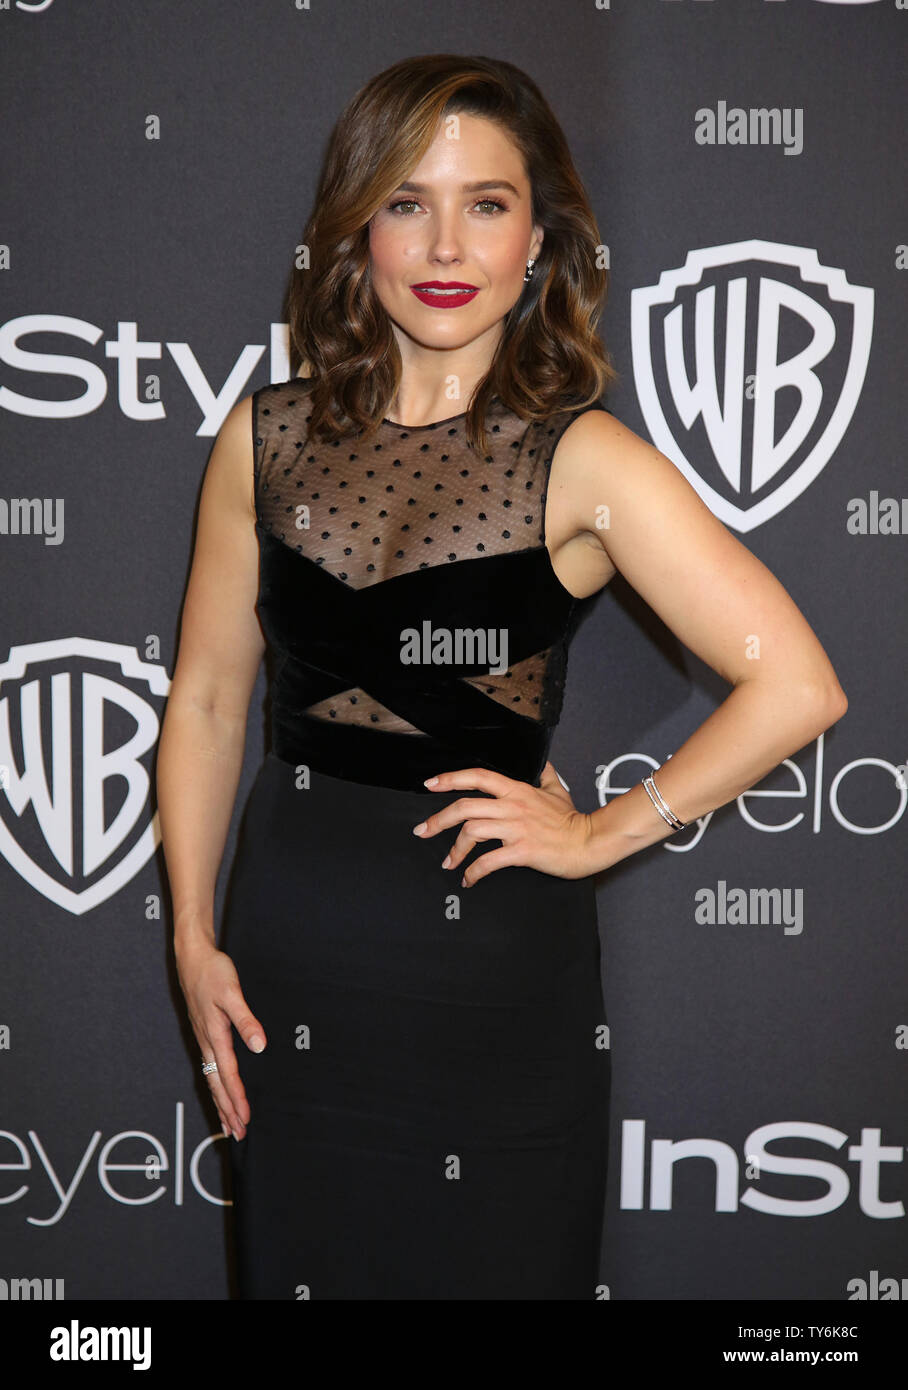 Sophia Bush attends the 18th annual InStyle and Warner Bros. Golden Globe after-party at the Beverly Hilton Hotel in Beverly Hills, California on January 8, 2017.  Photo by David Silpa/UPI - Stock Image